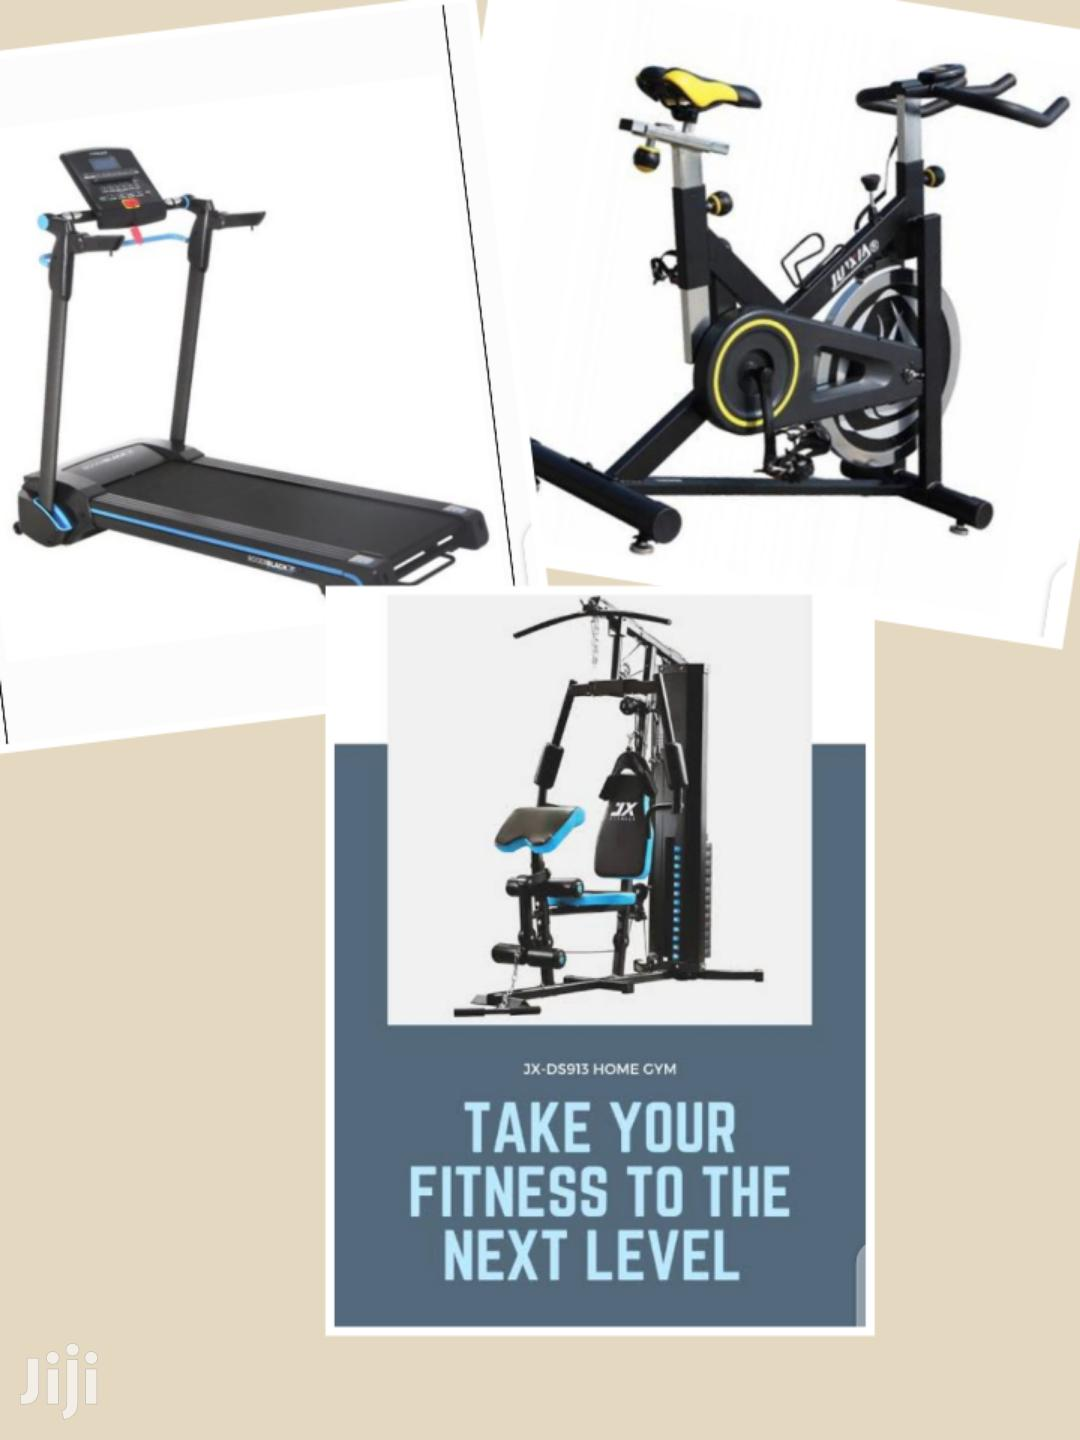 Offer! Treadmill + Spinbike + Home Gym Package